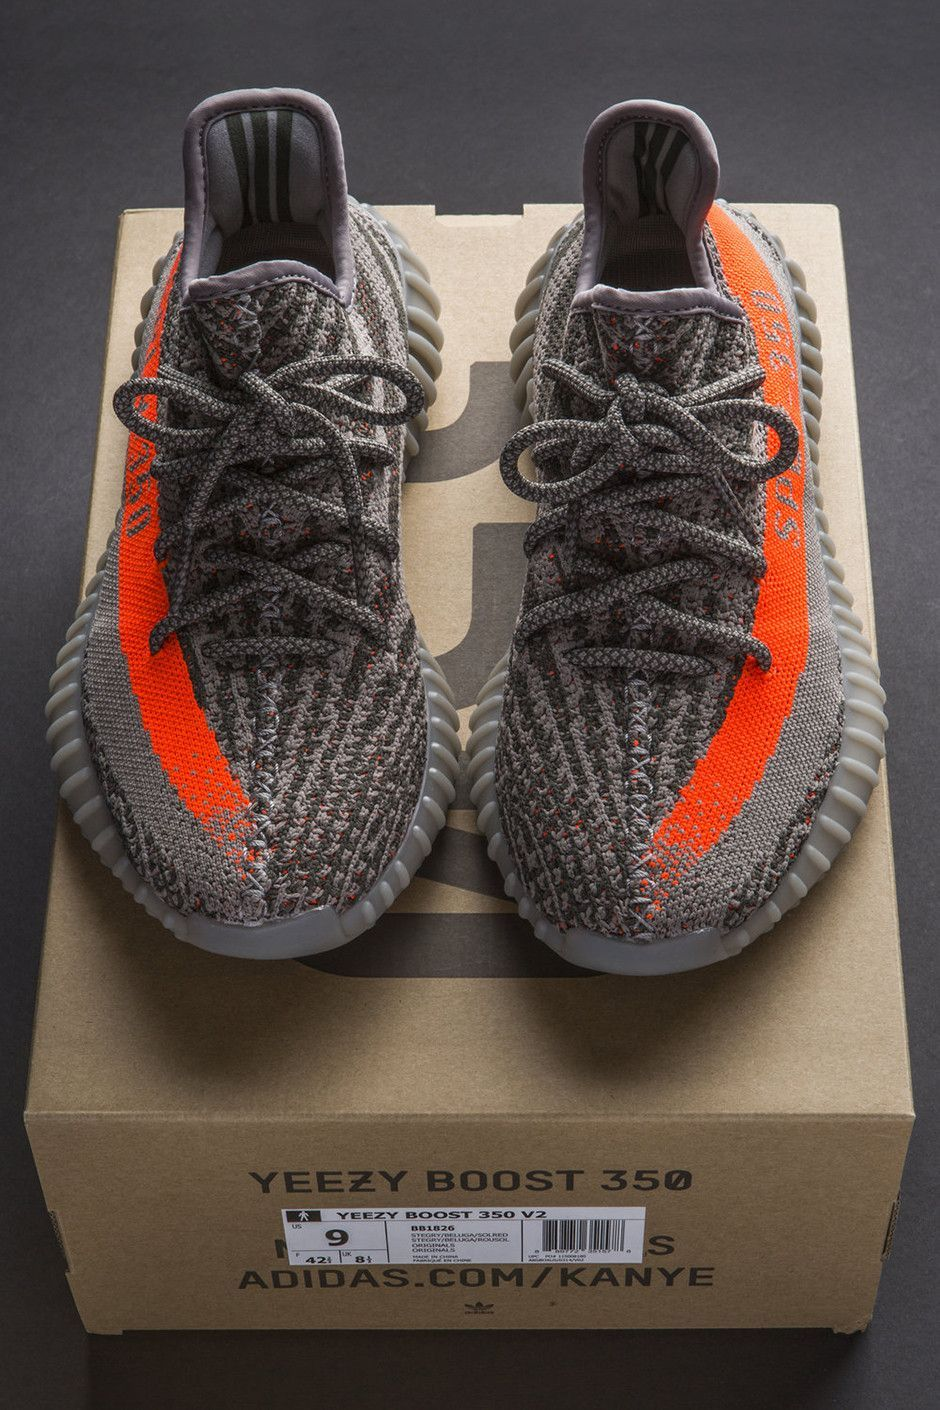 finest selection bbf32 5bd0a Adidas Shoes | Fashion (Community) | Shoes, Yeezy shoes, Yeezy